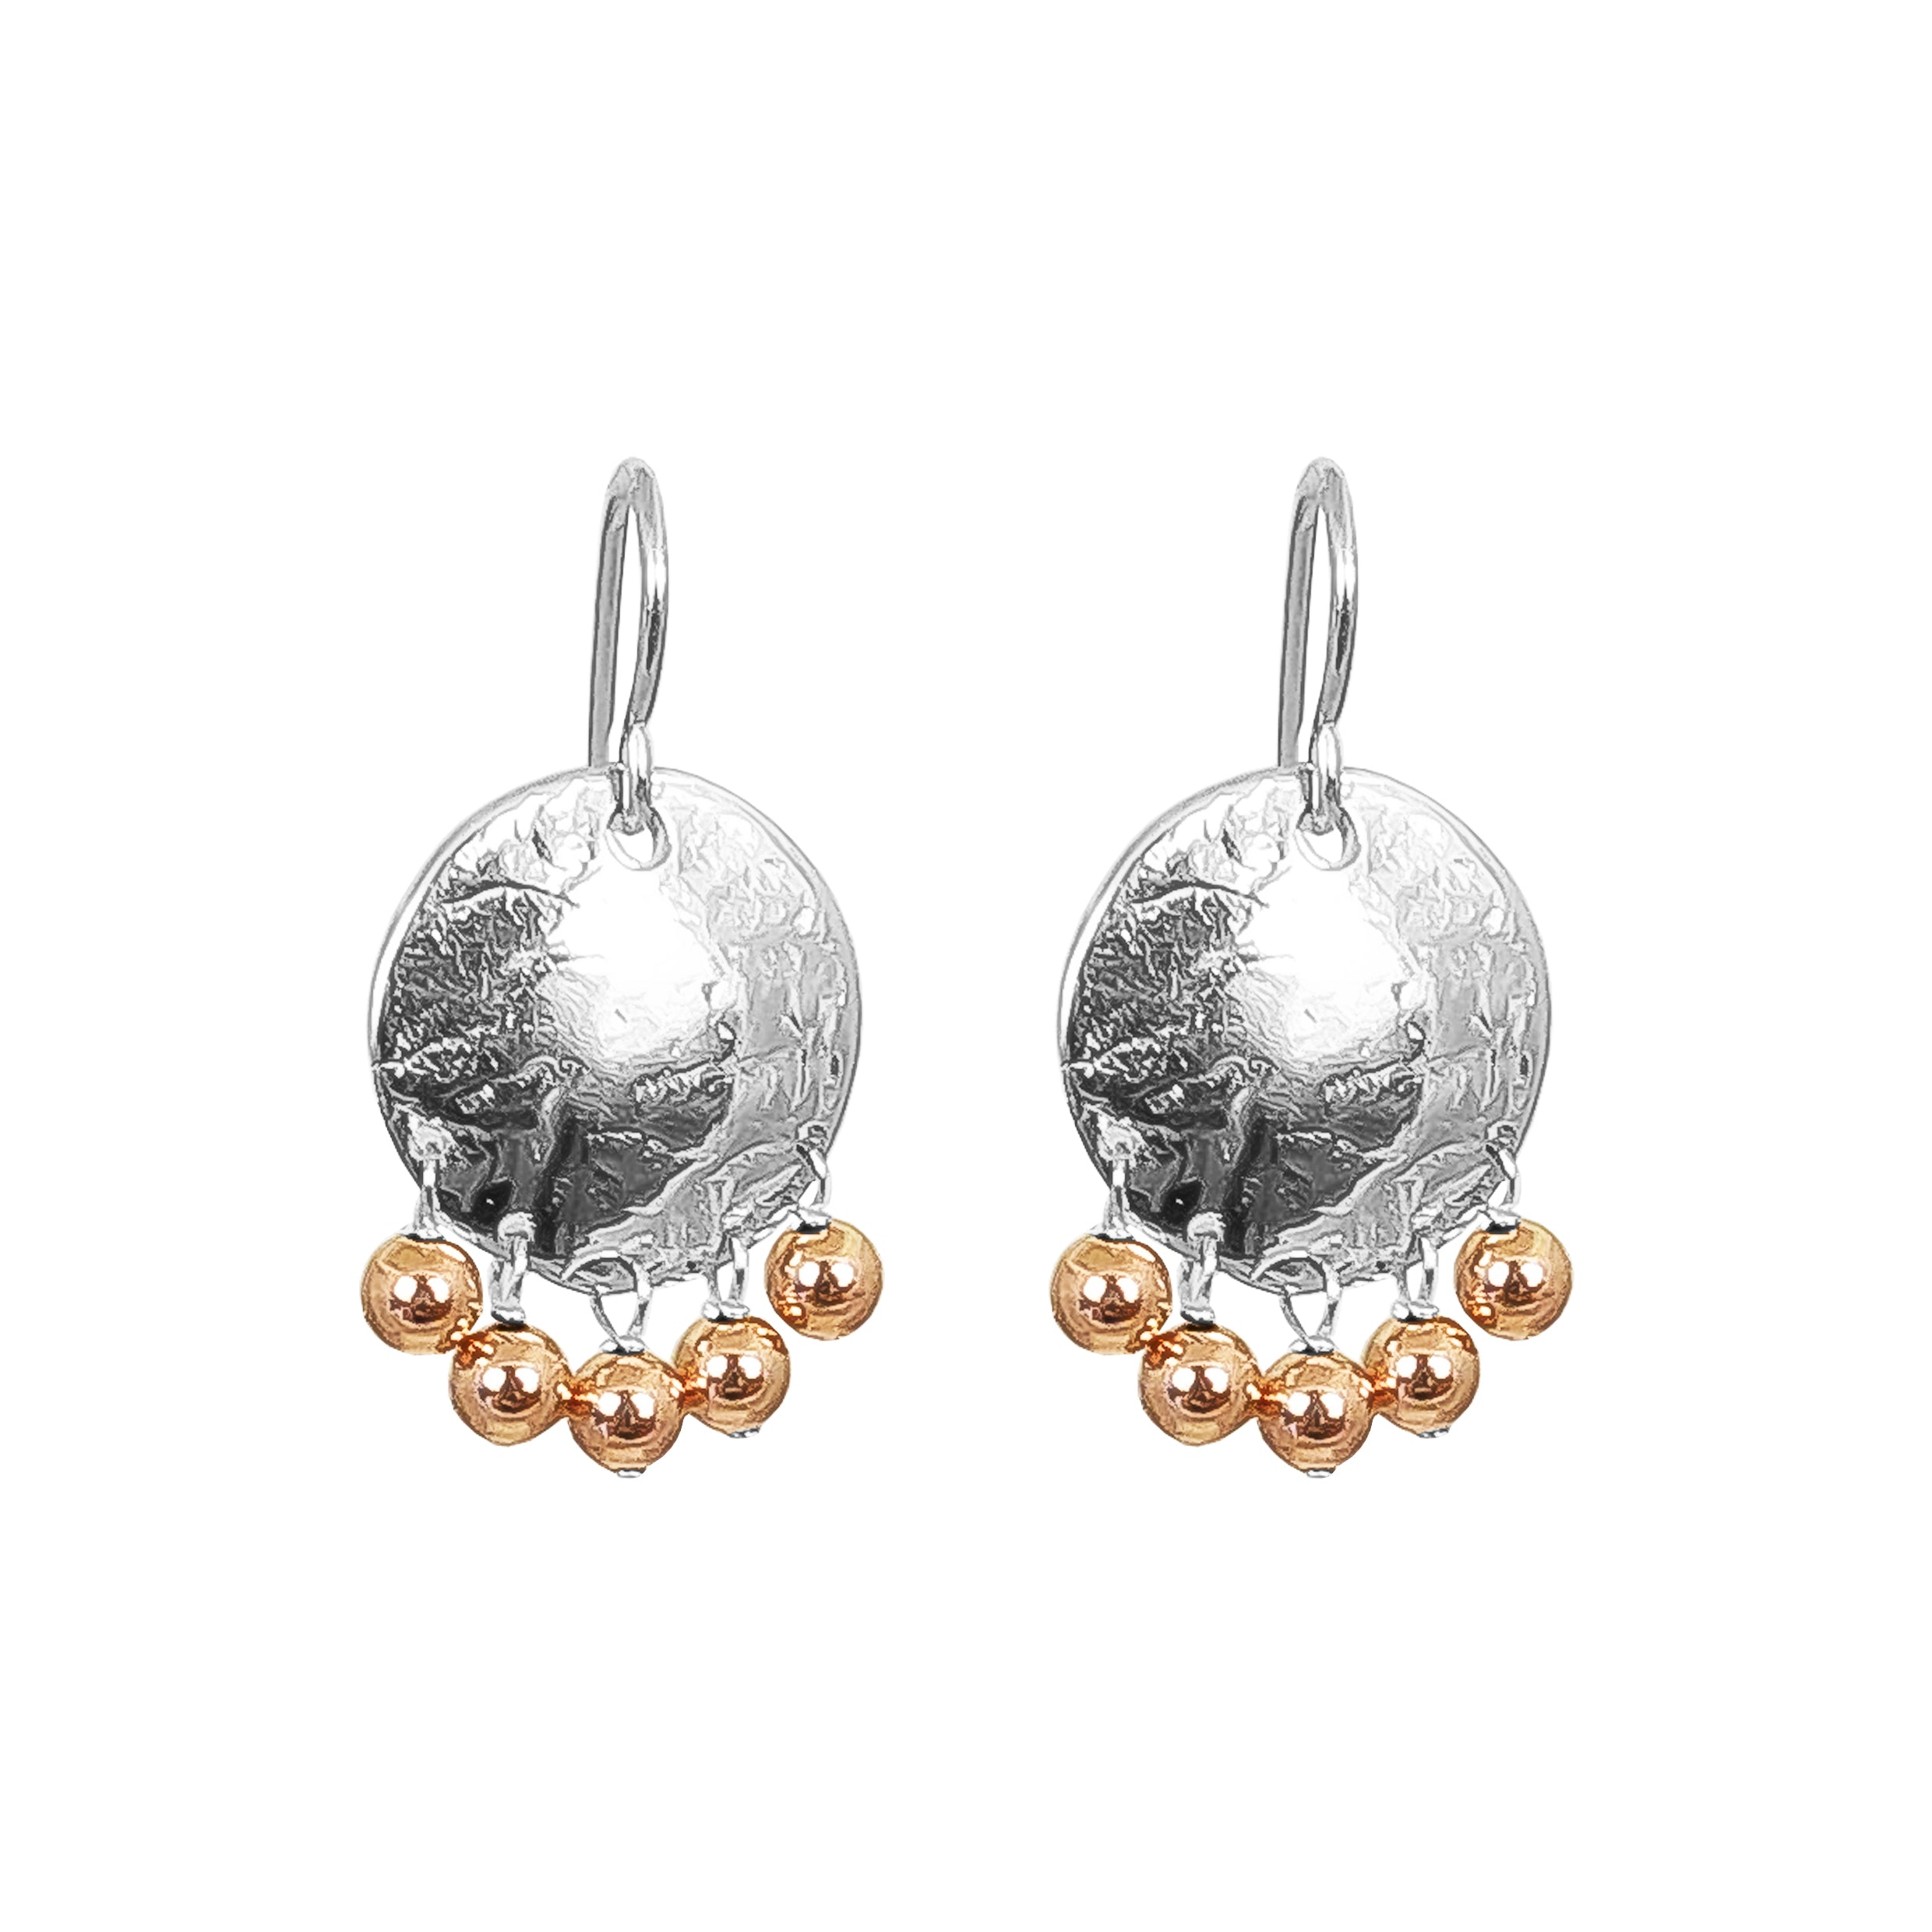 Harlow Small Disc Earrings | Silver With Polished Rose Drops